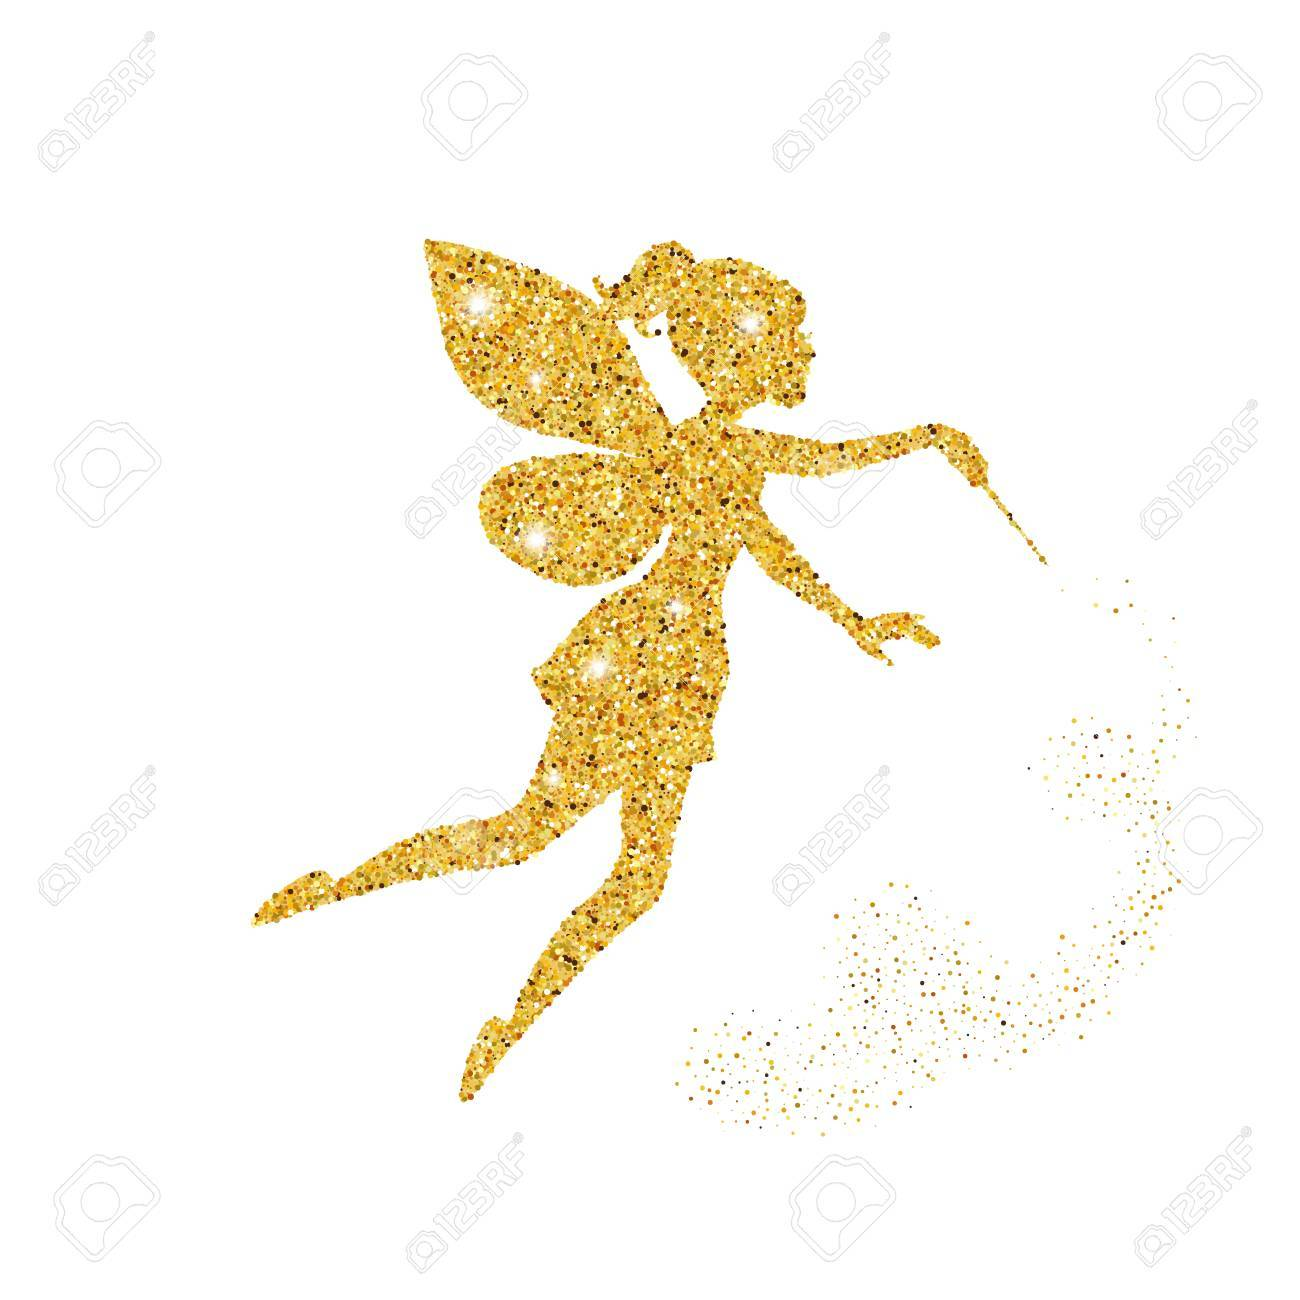 Magical fairy with dust glitters on white background. - 81060622